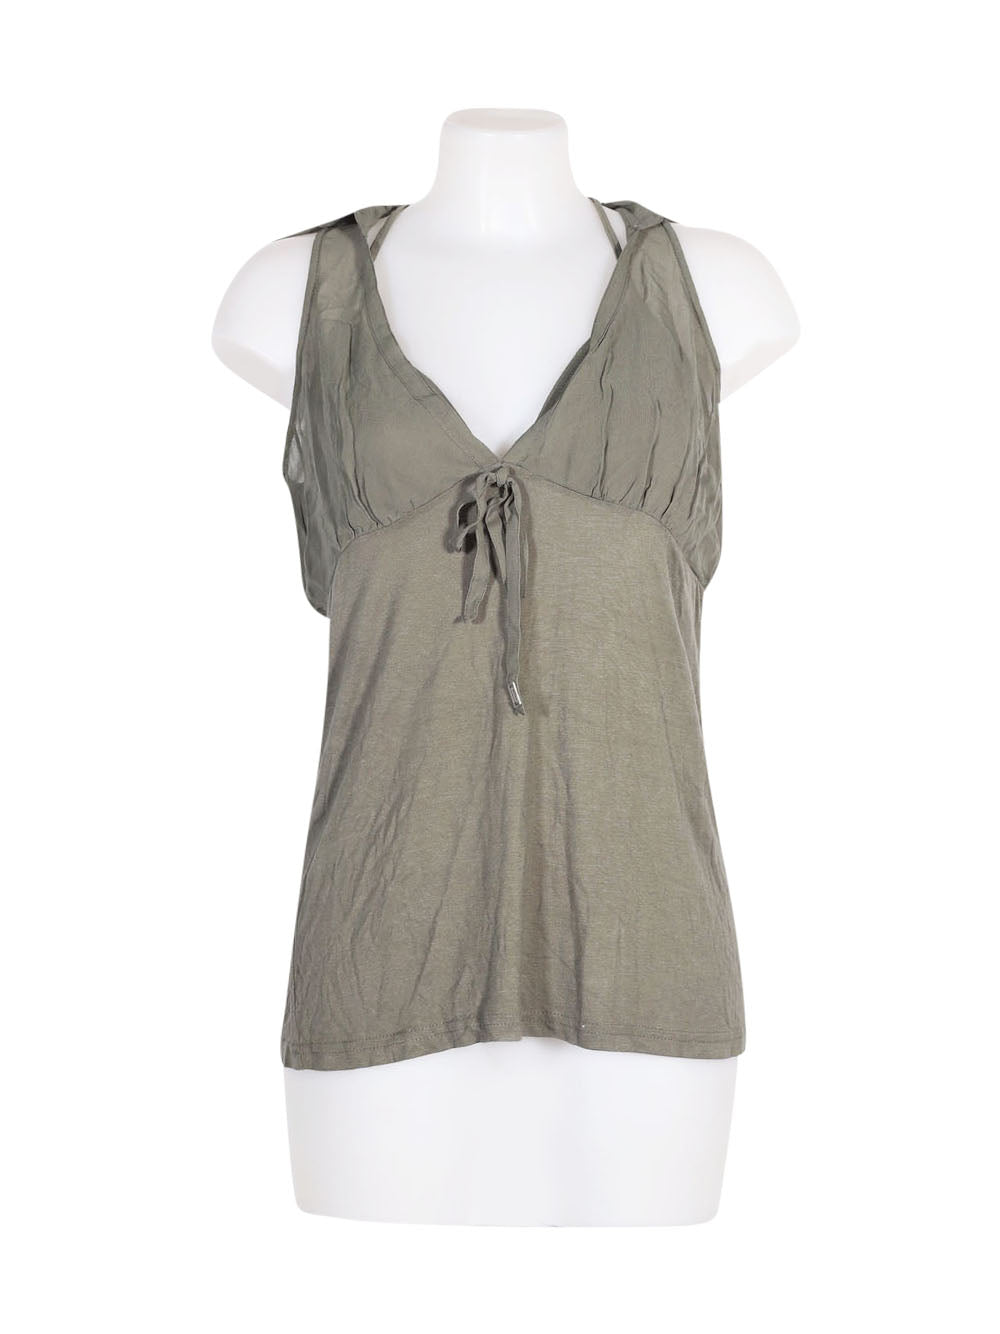 Front photo of Preloved Miss Sixty Green Woman's sleeveless top - size 12/L